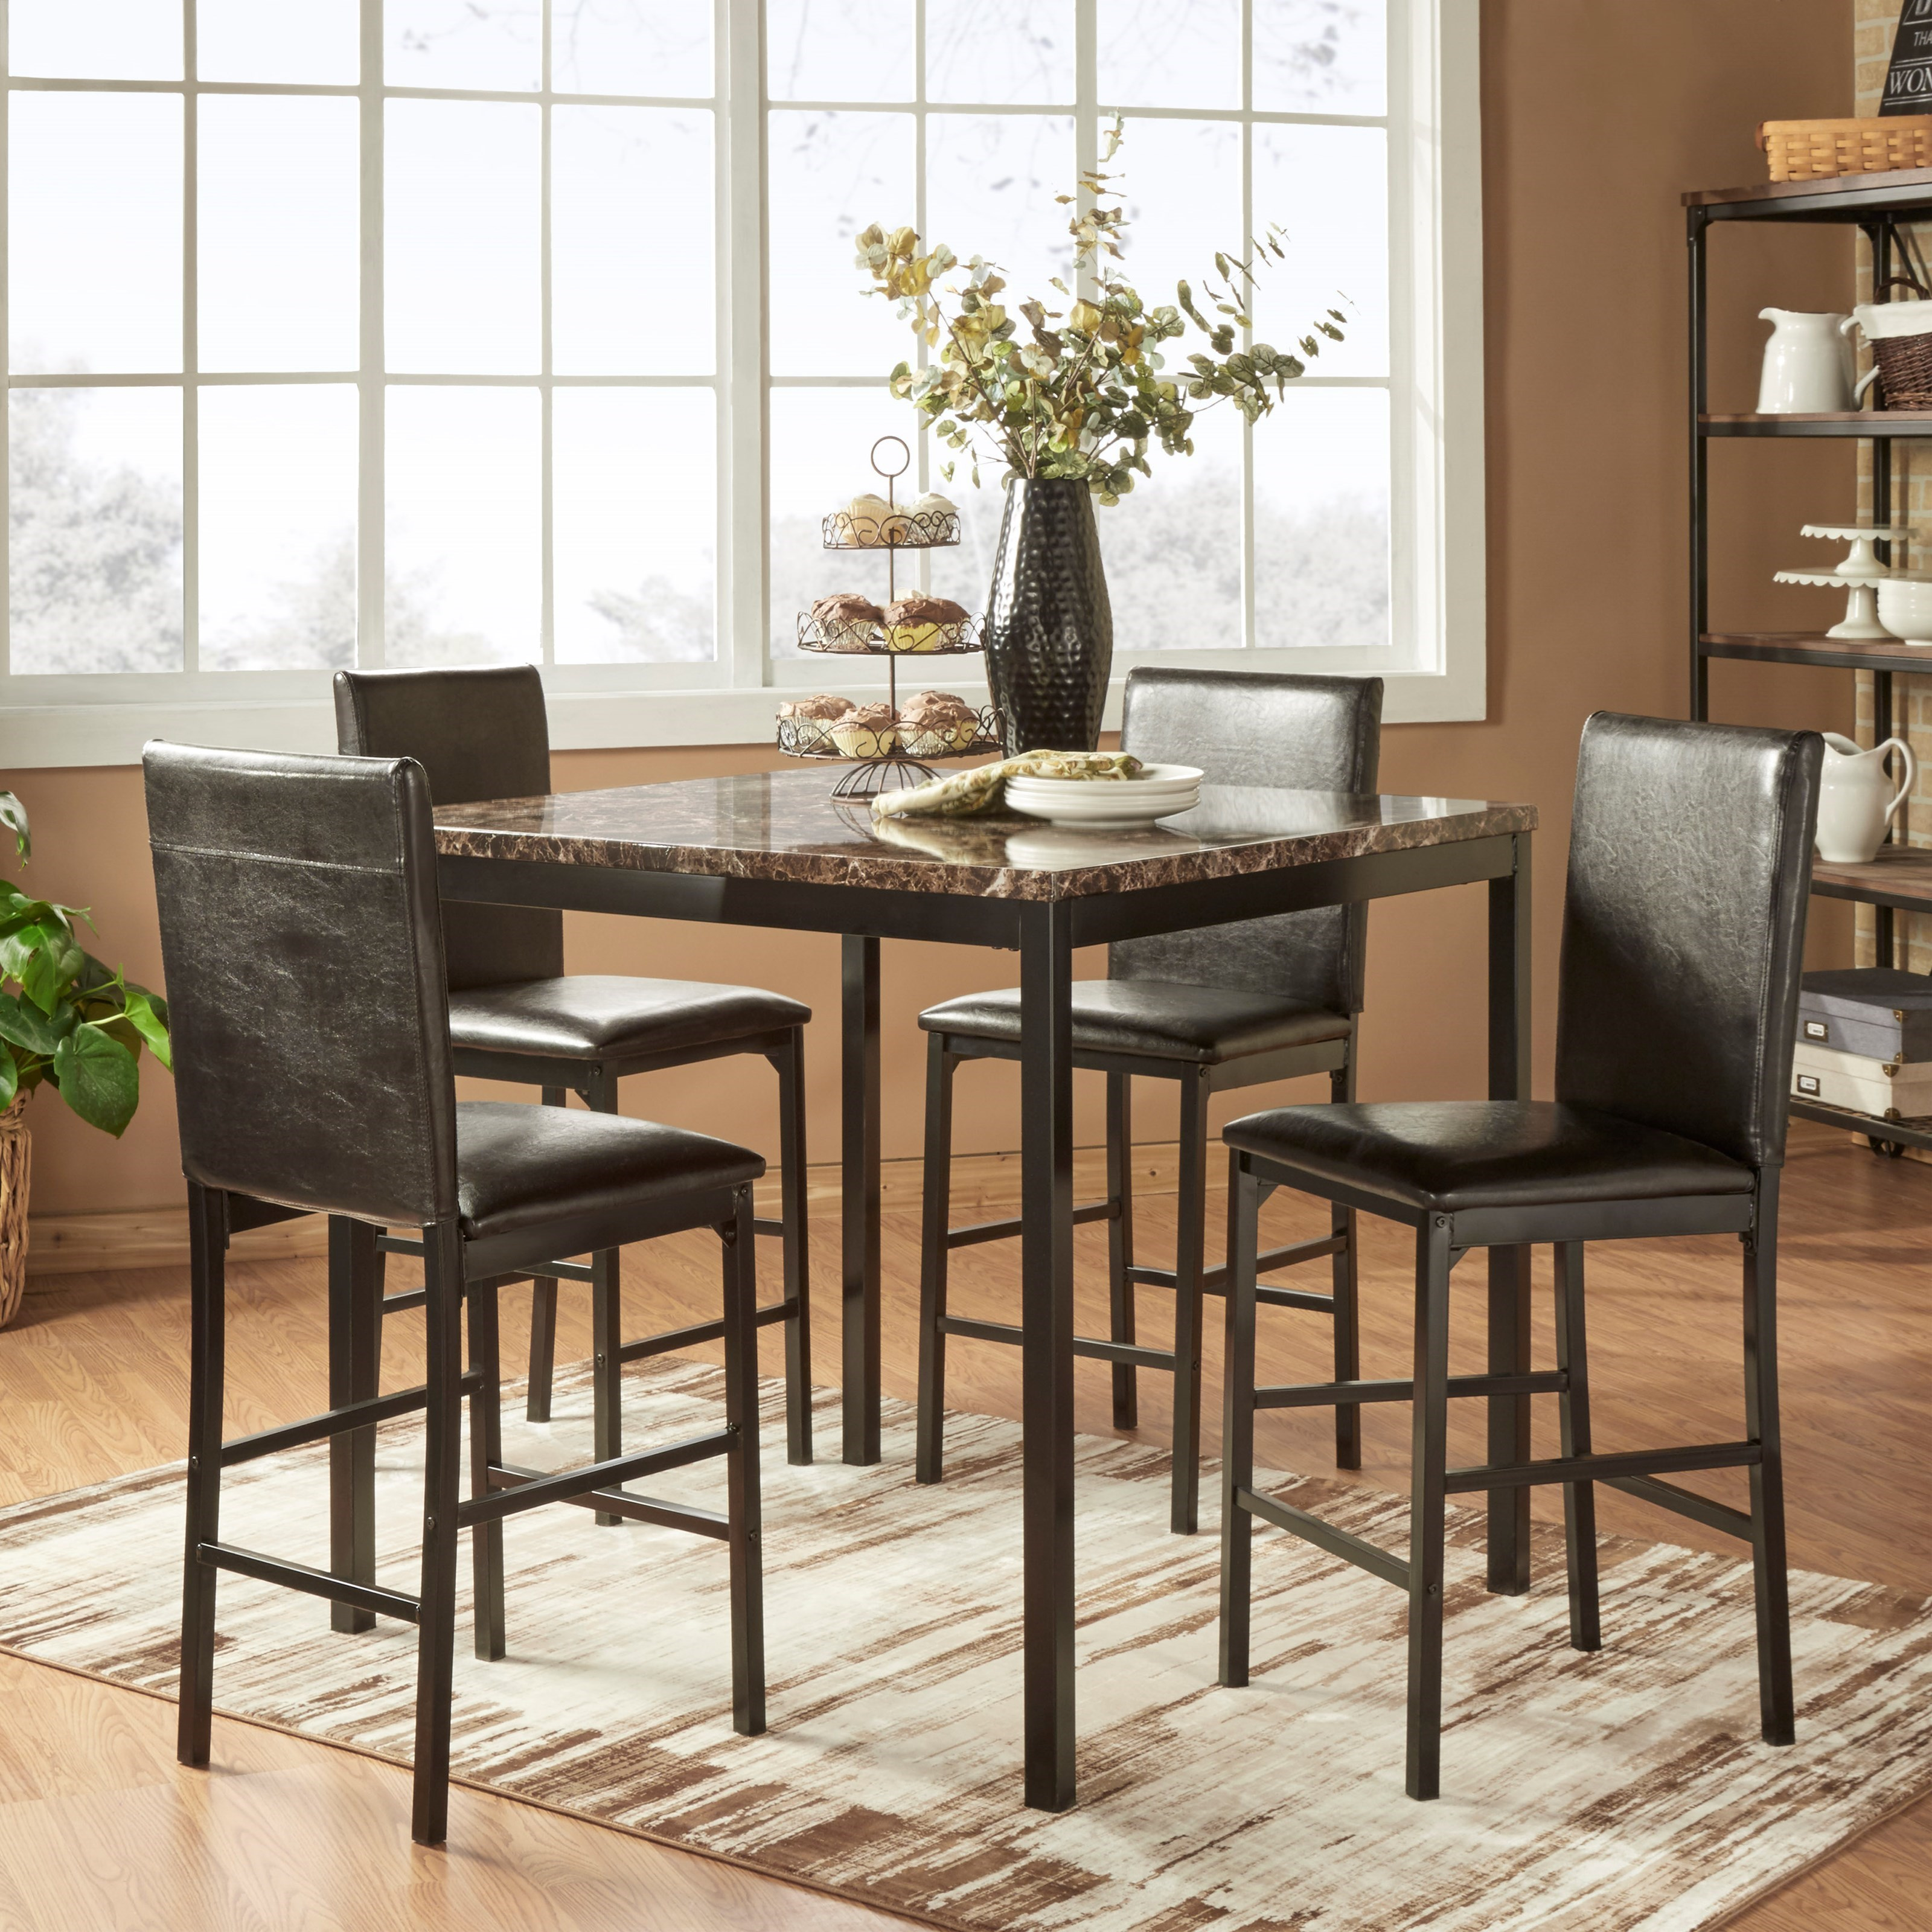 Homelegance tempe counter height table and chair set for Hudsons furniture